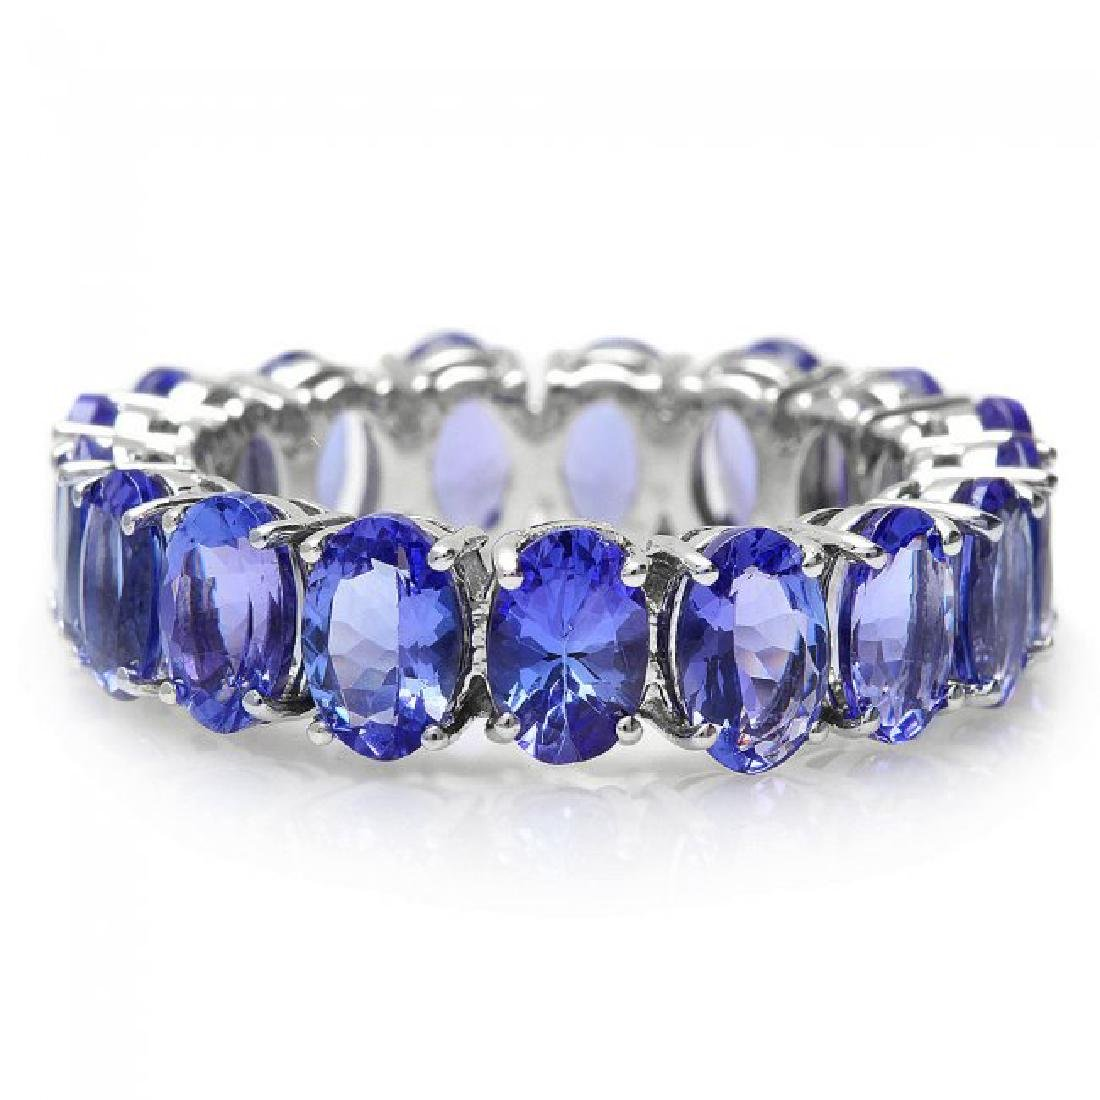 14k White Gold 8.00ct Tanzanite Ring - 2